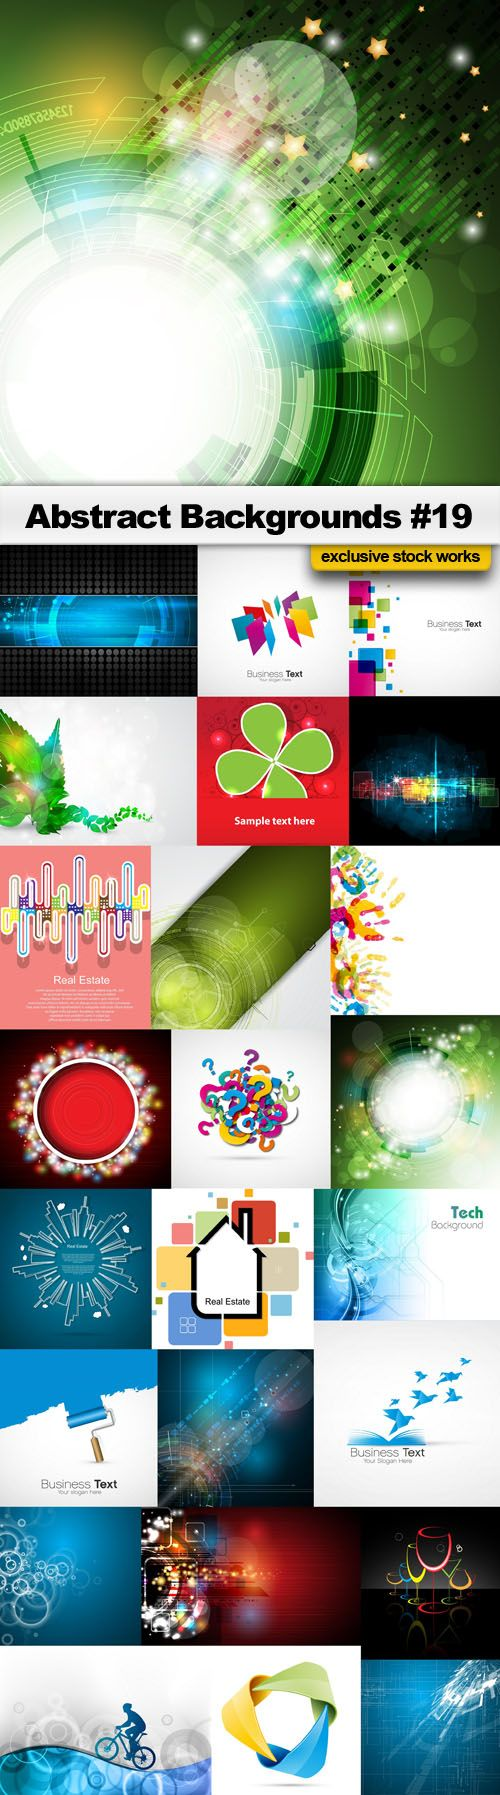 Abstract Backgrounds #19 – 25x EPS, AI